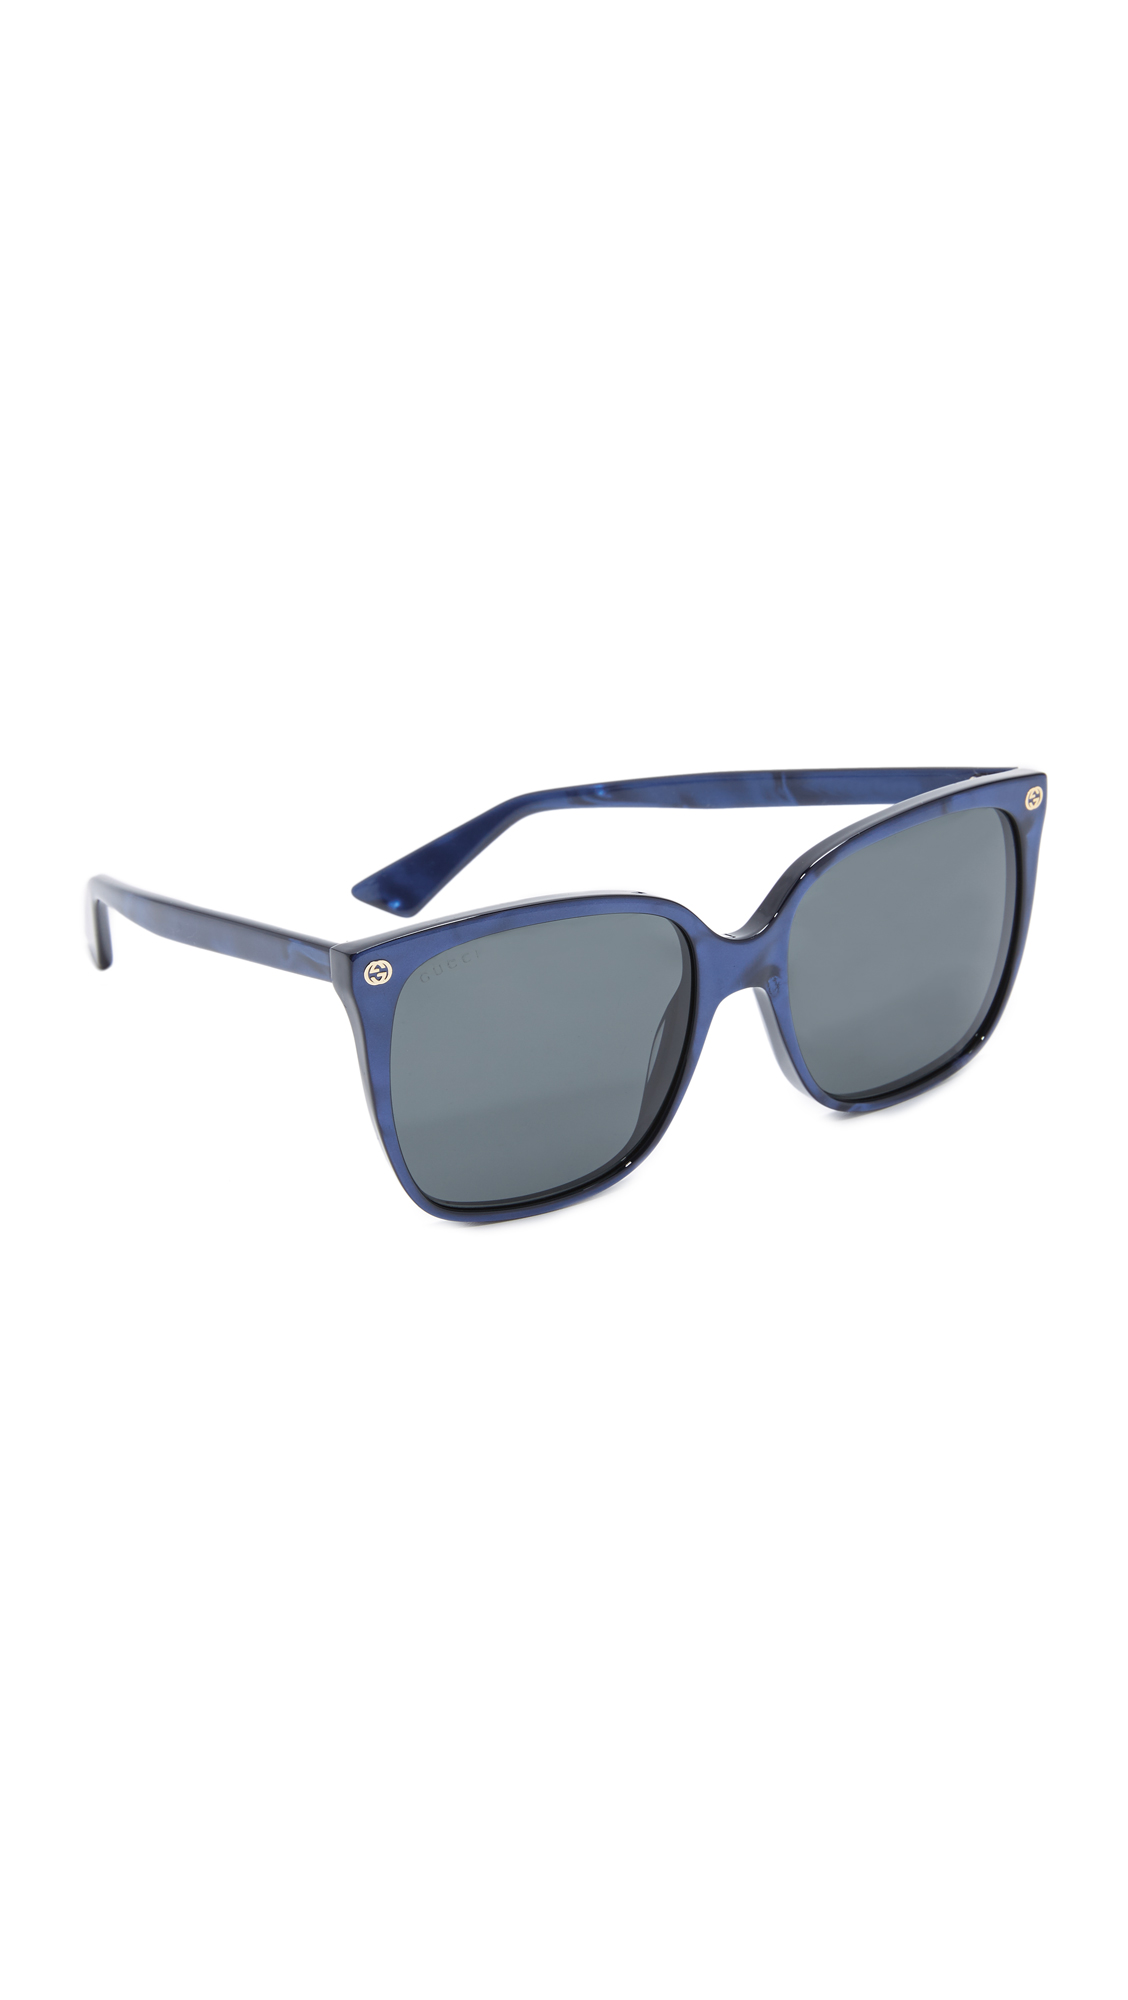 Gucci Lightness Square Sunglasses - Pearled Blue/Gray